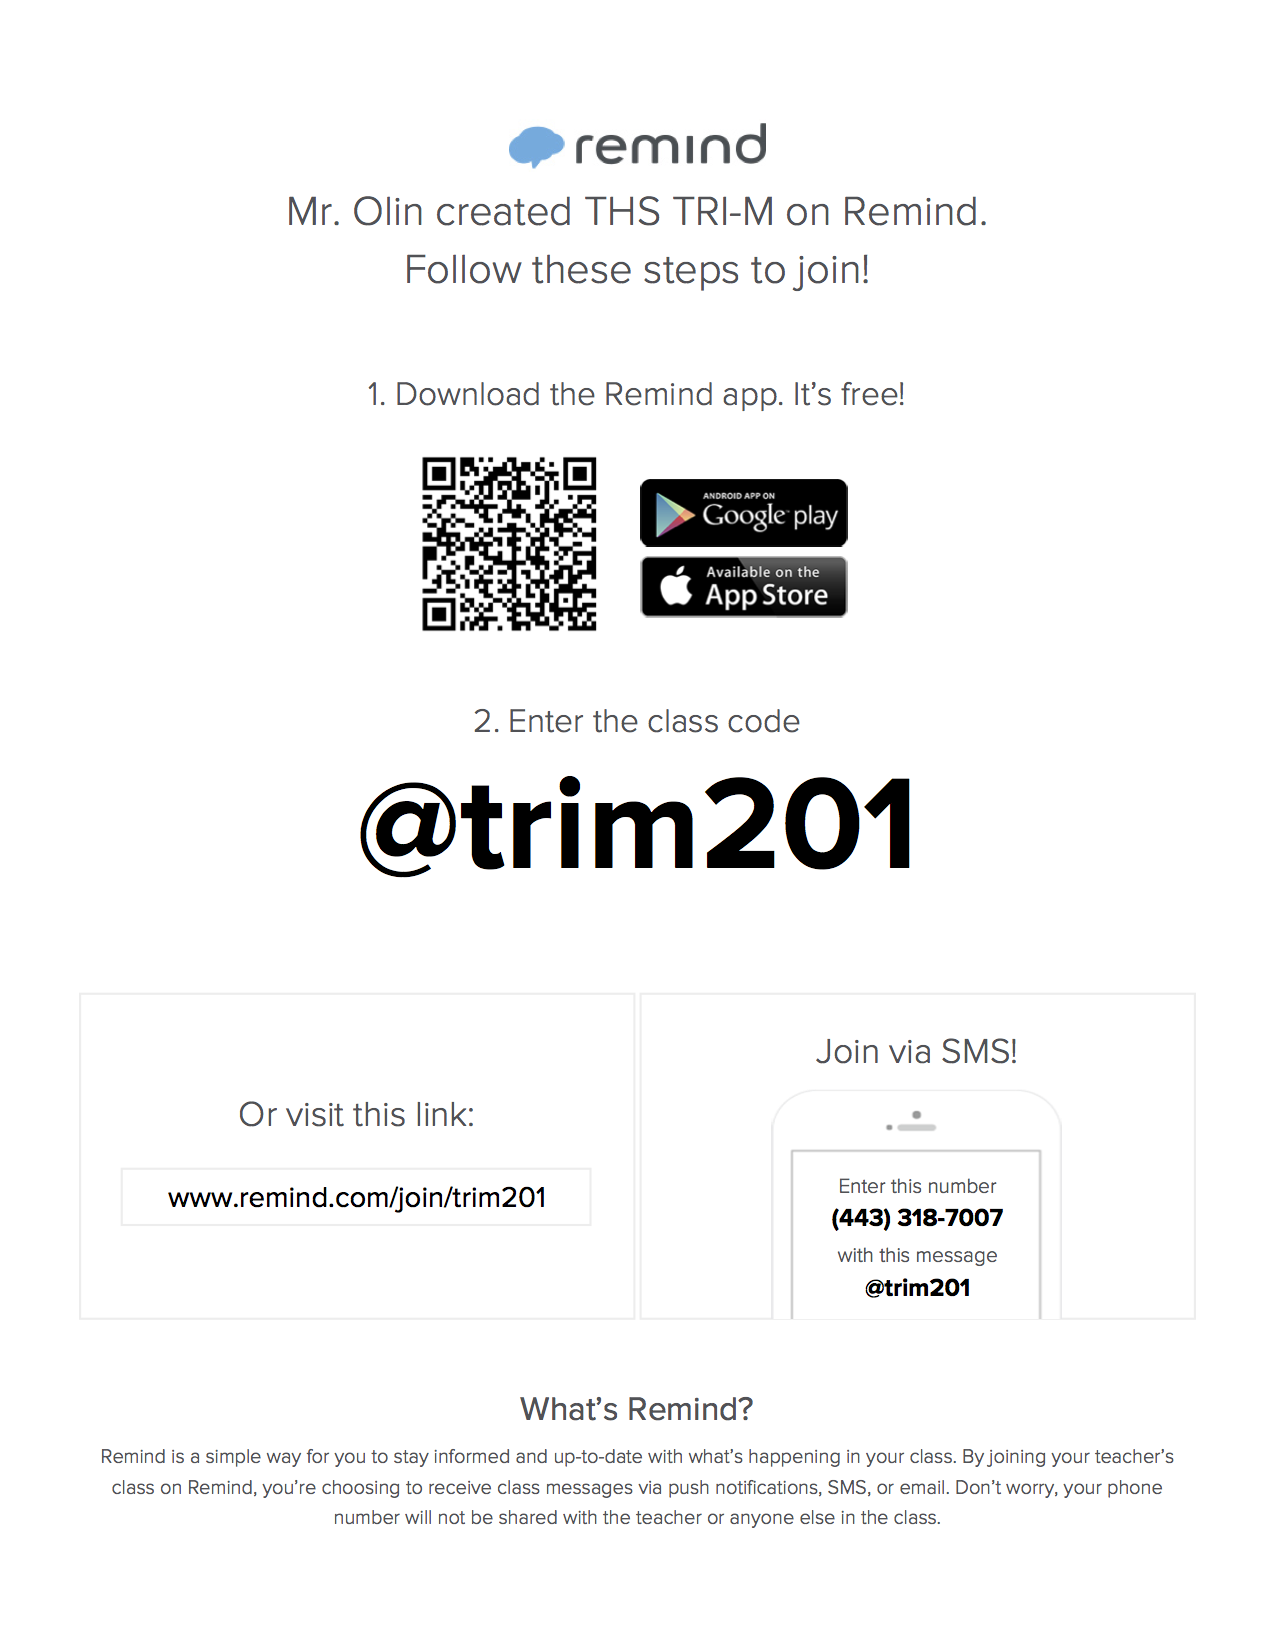 https://www.remind.com/join/trim201